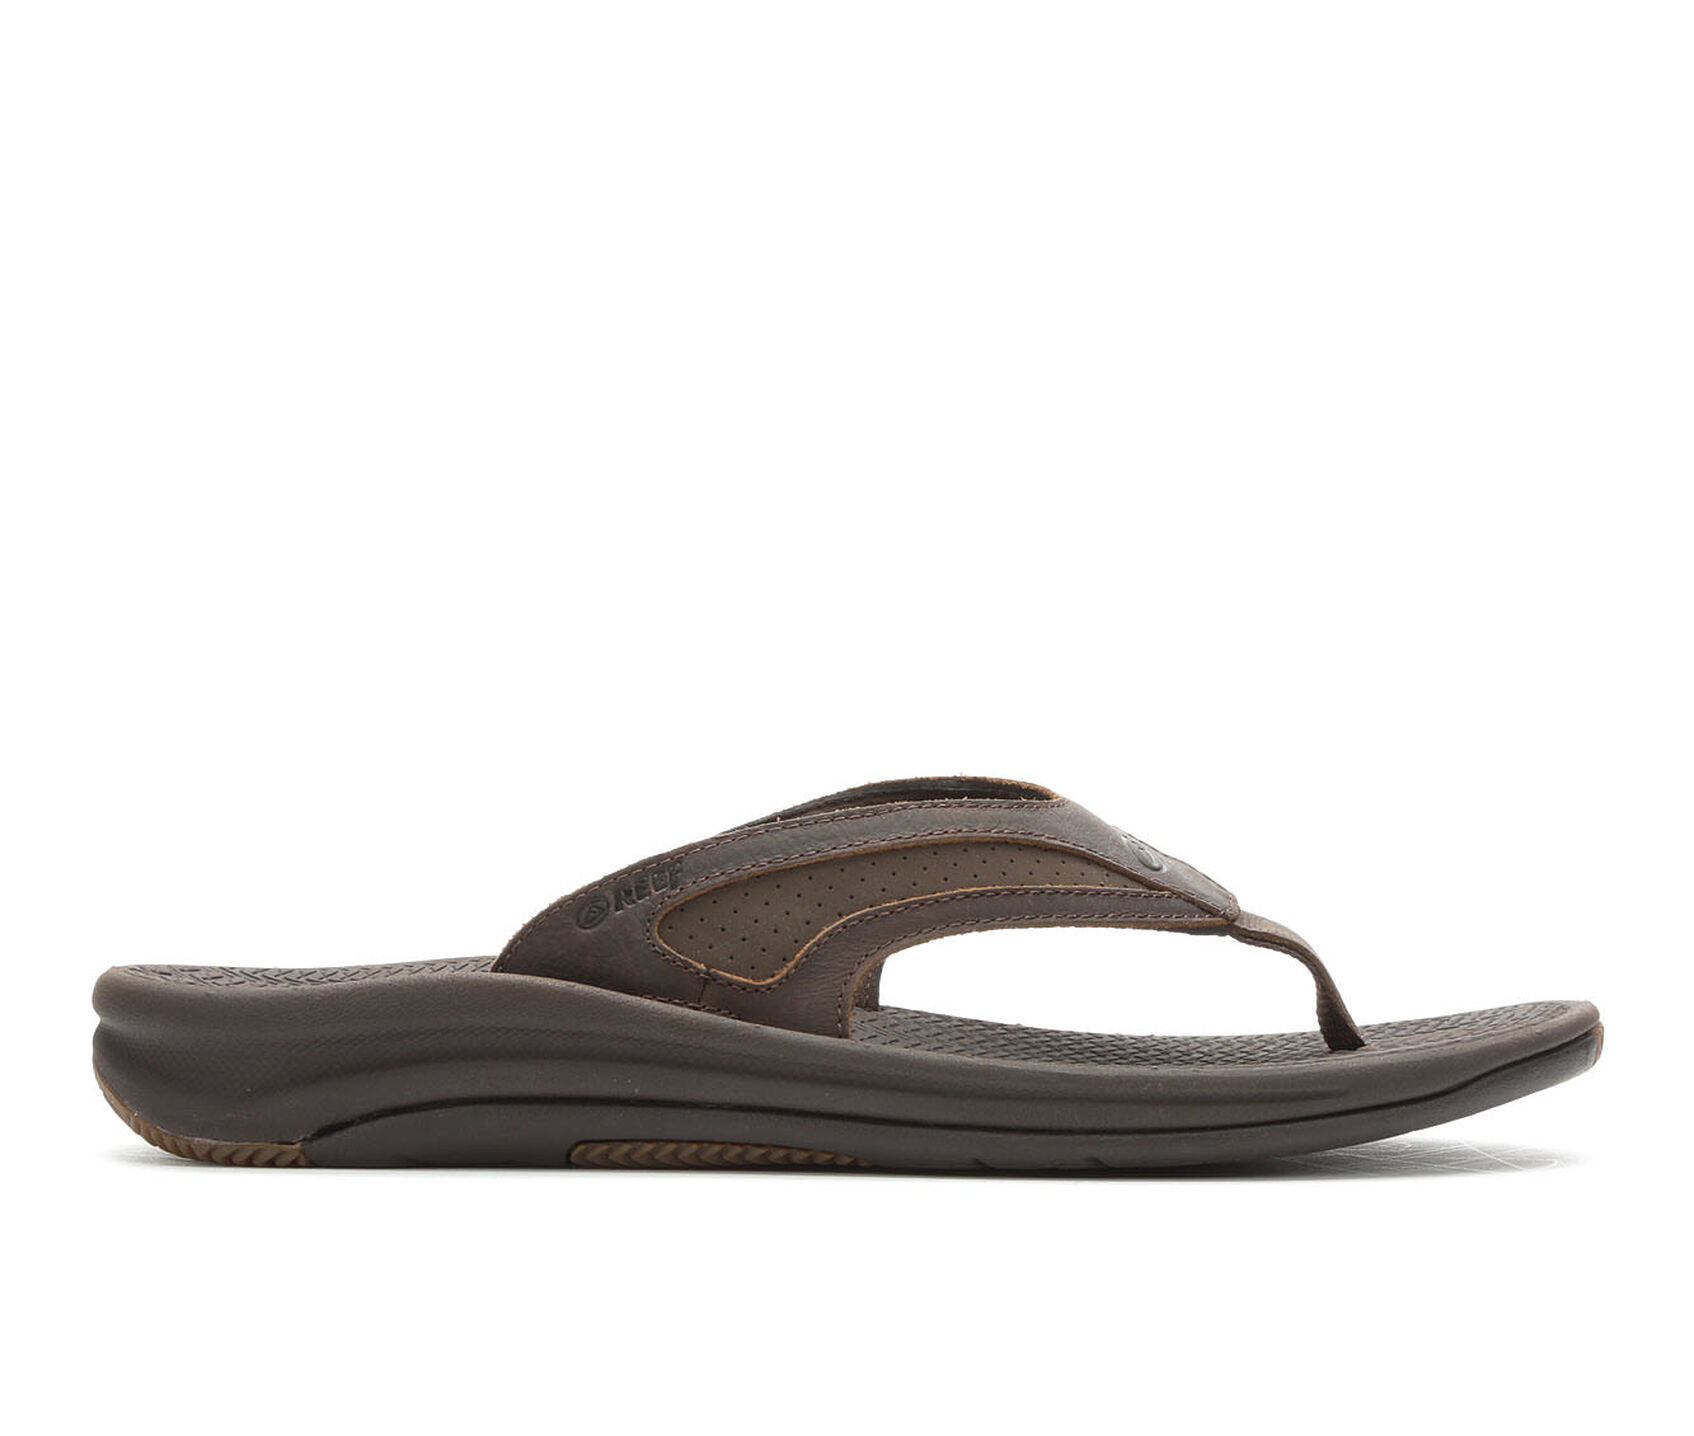 fcda8d1d749 ... Reef Flex LE Flip-Flops. Previous